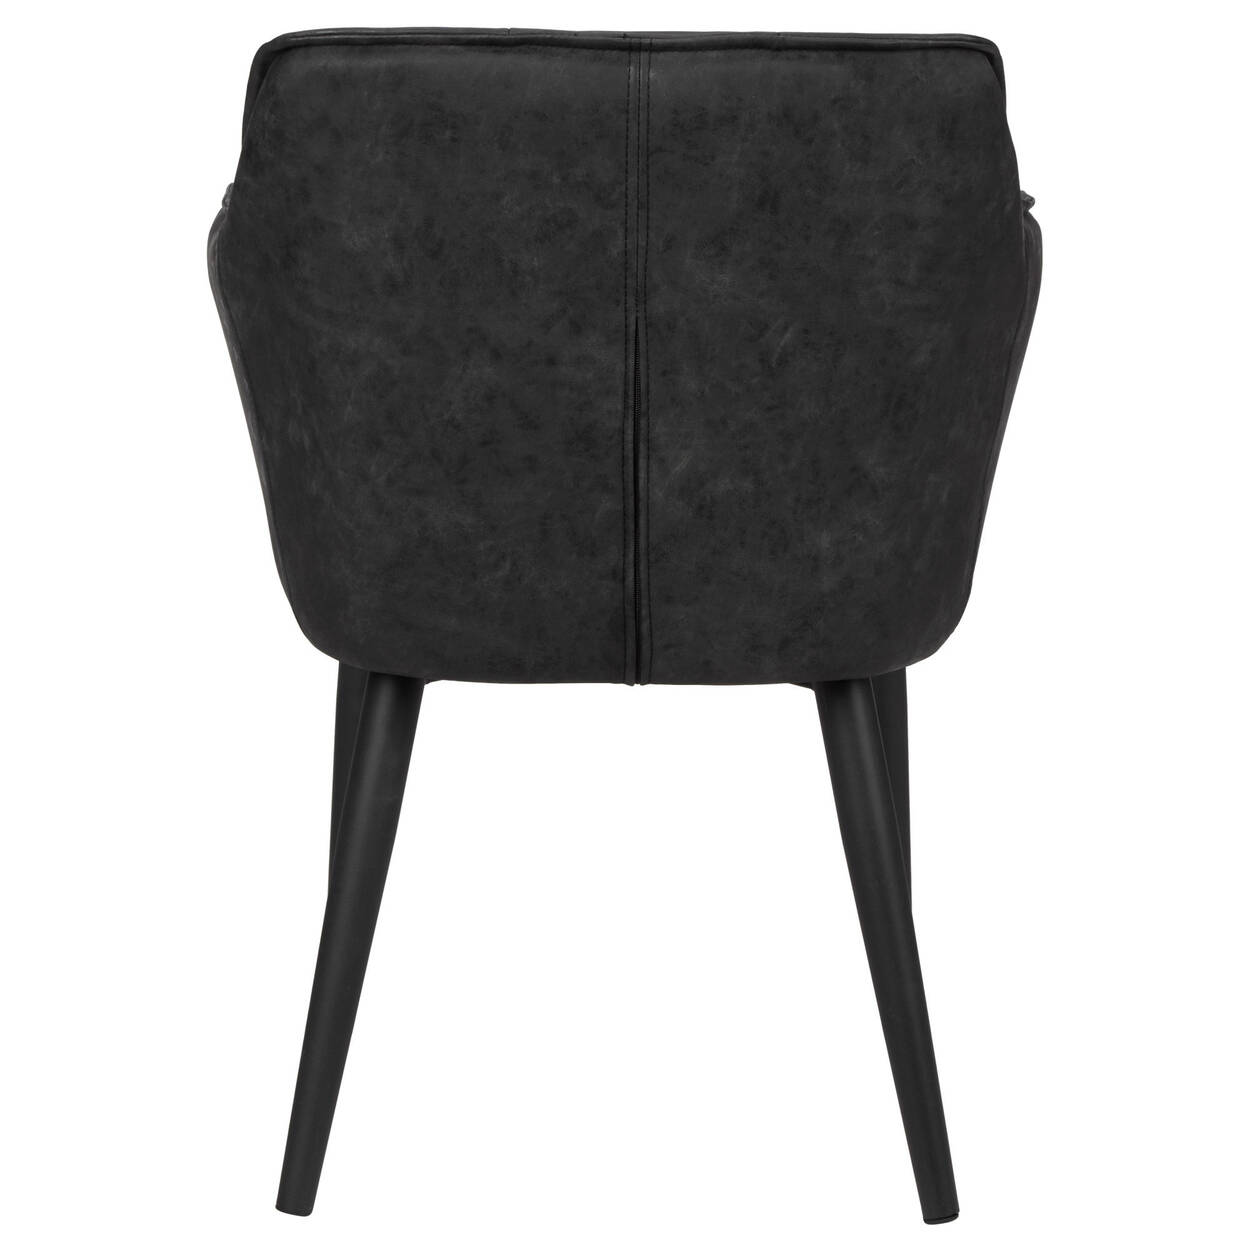 Textured Faux Leather and Metal Dining Chair   Bouclair.com